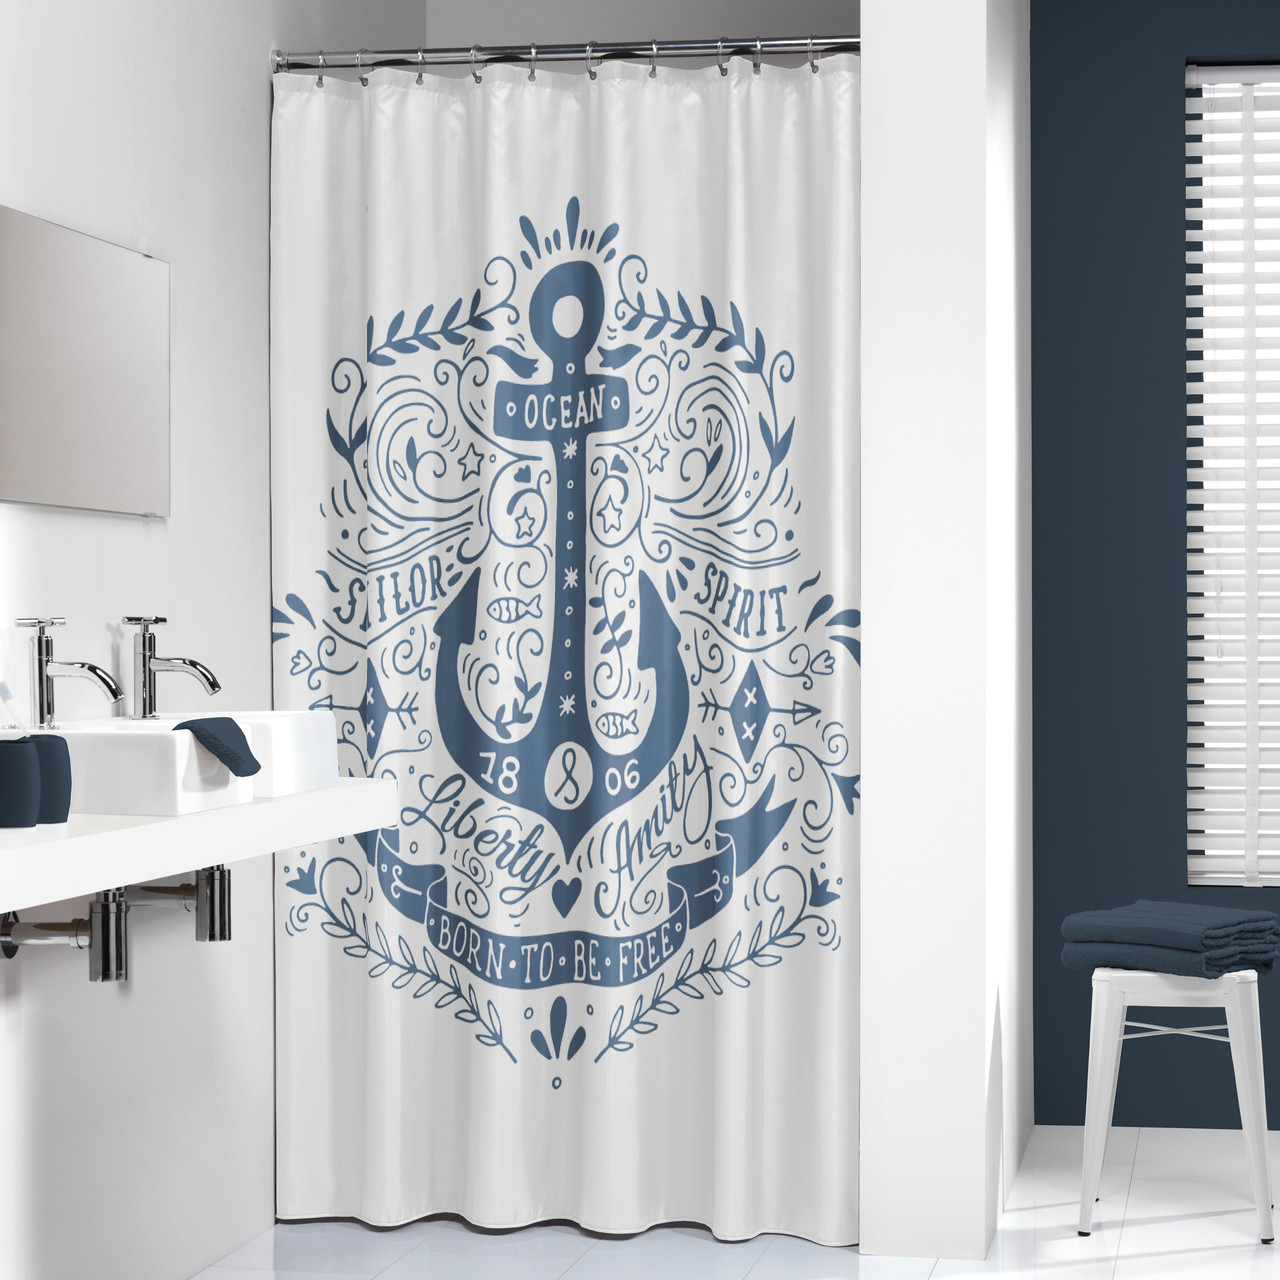 Extra Long Shower Curtain 72 X 78 Inch Sealskin Anchor Blue And White Fabric